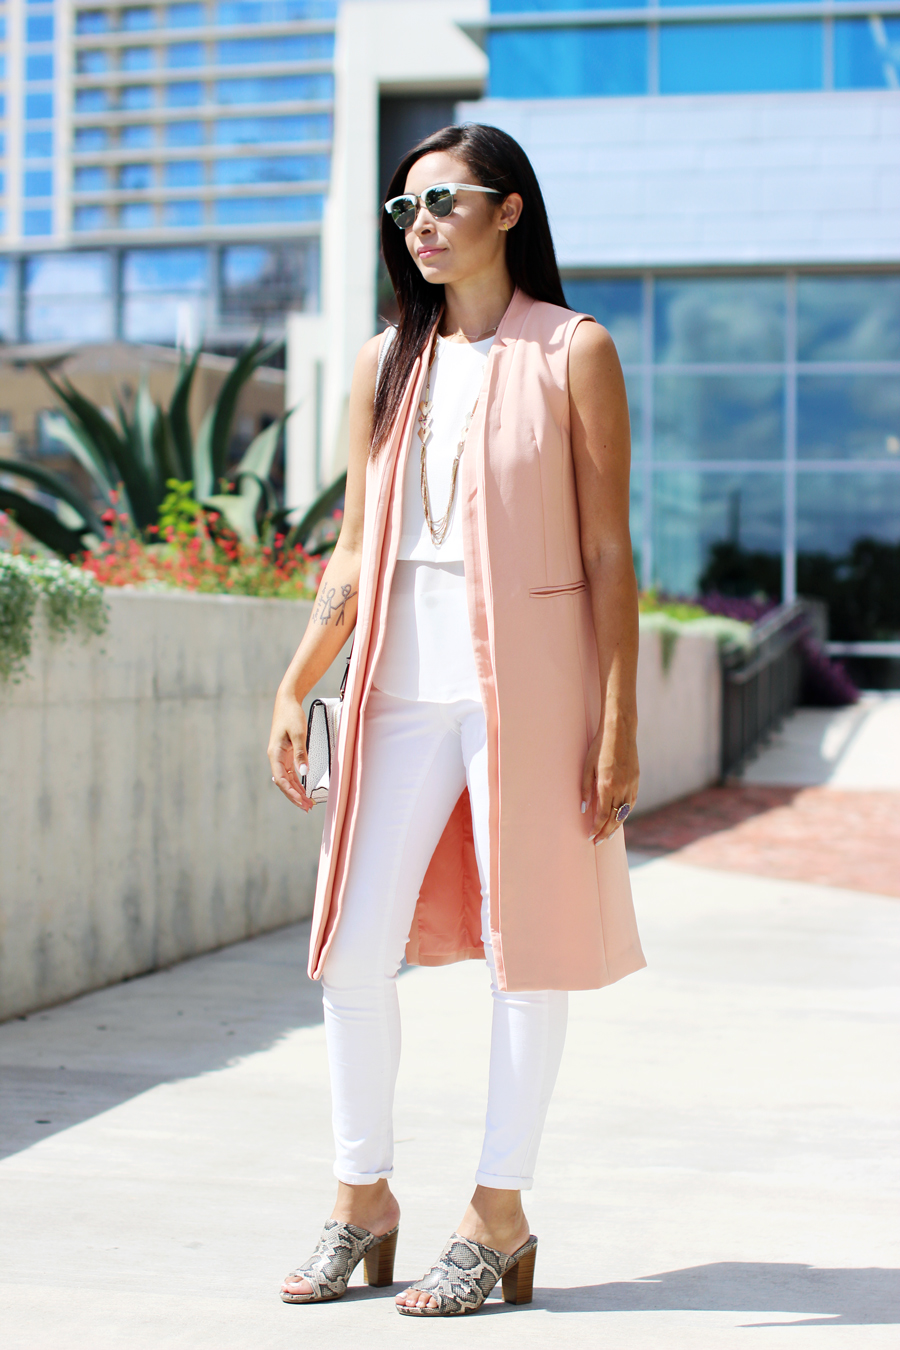 FTT-LILY-JAMES-COLLECTION-PINK-VEST-WHITE-LOOK-MULES-13